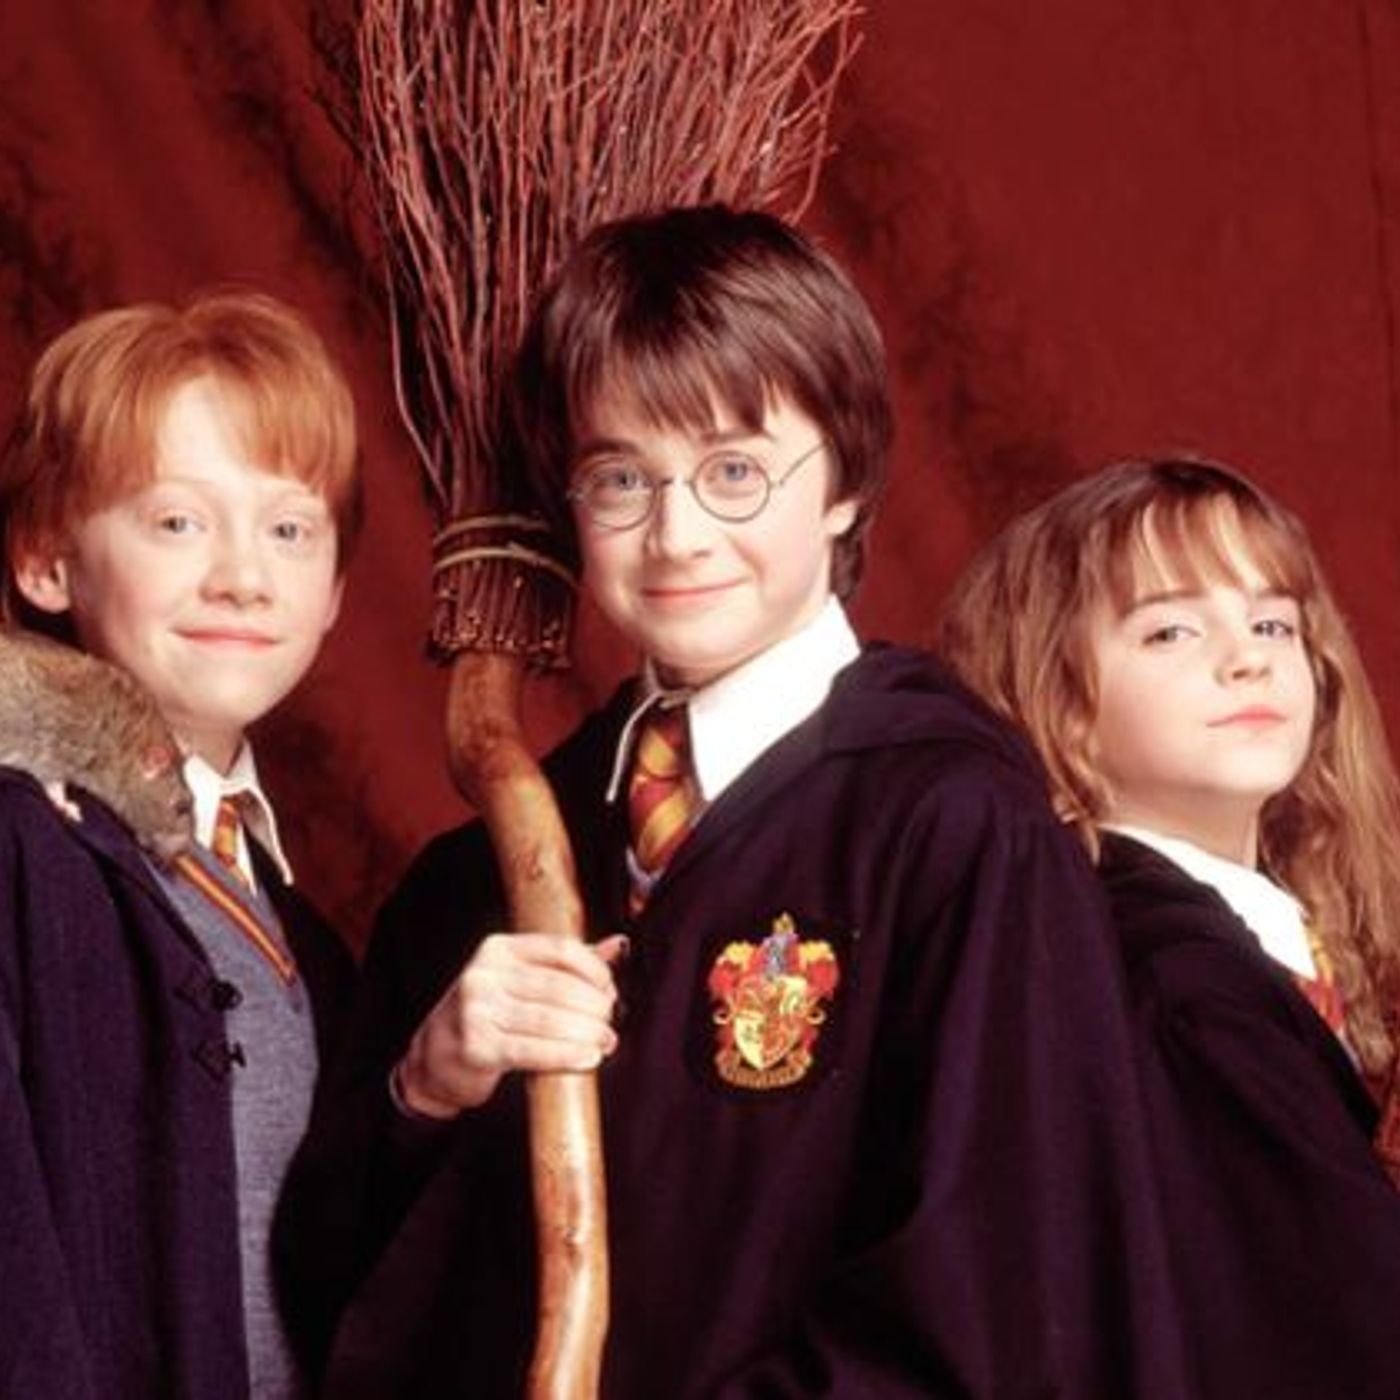 S2 Ep.10 : Harry Potter Season Finale starring the Sorting Hat